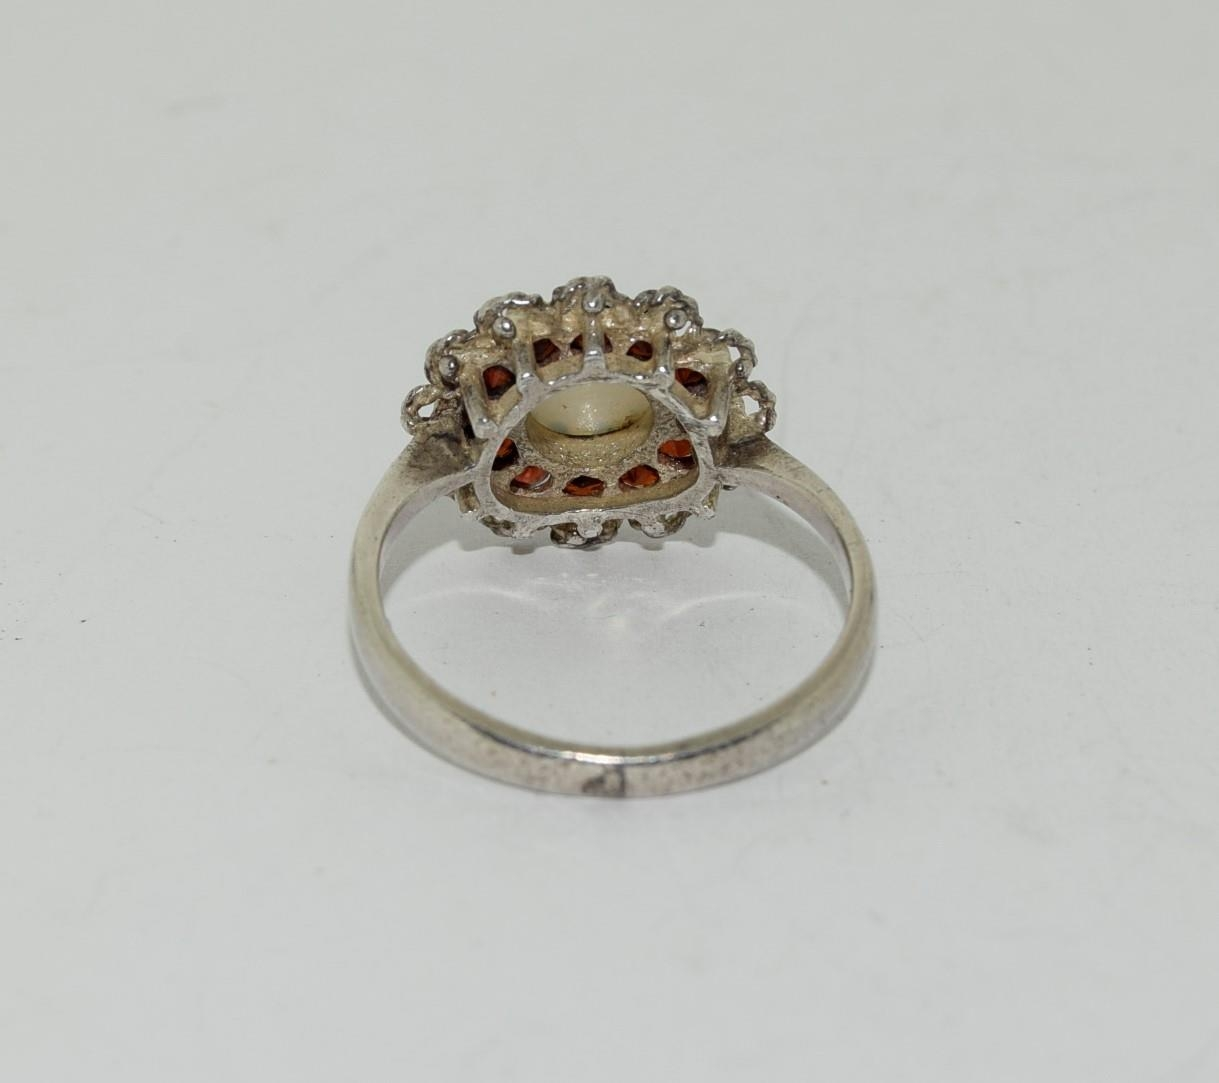 A Vintage and Opal/Garnet sterling silver daisy Ring, Size M. - Image 3 of 3